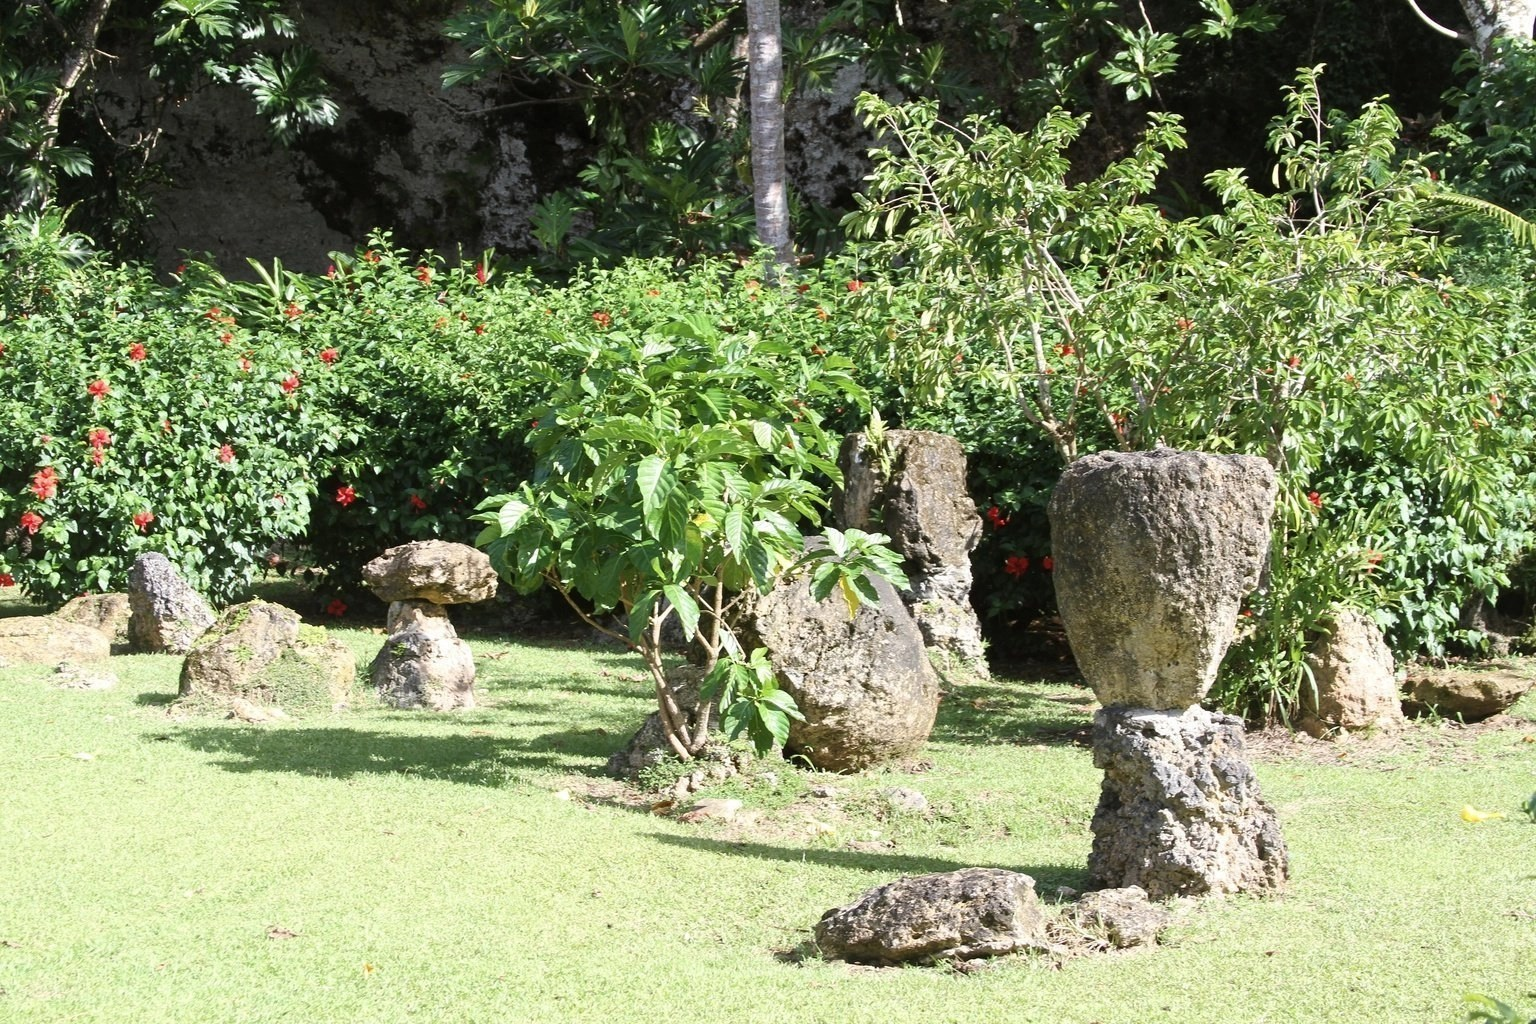 Guam, Things to do, Tours, Activities, Valley of the Latte, Ancient Chamorro Latte Site, Botanical Gardens